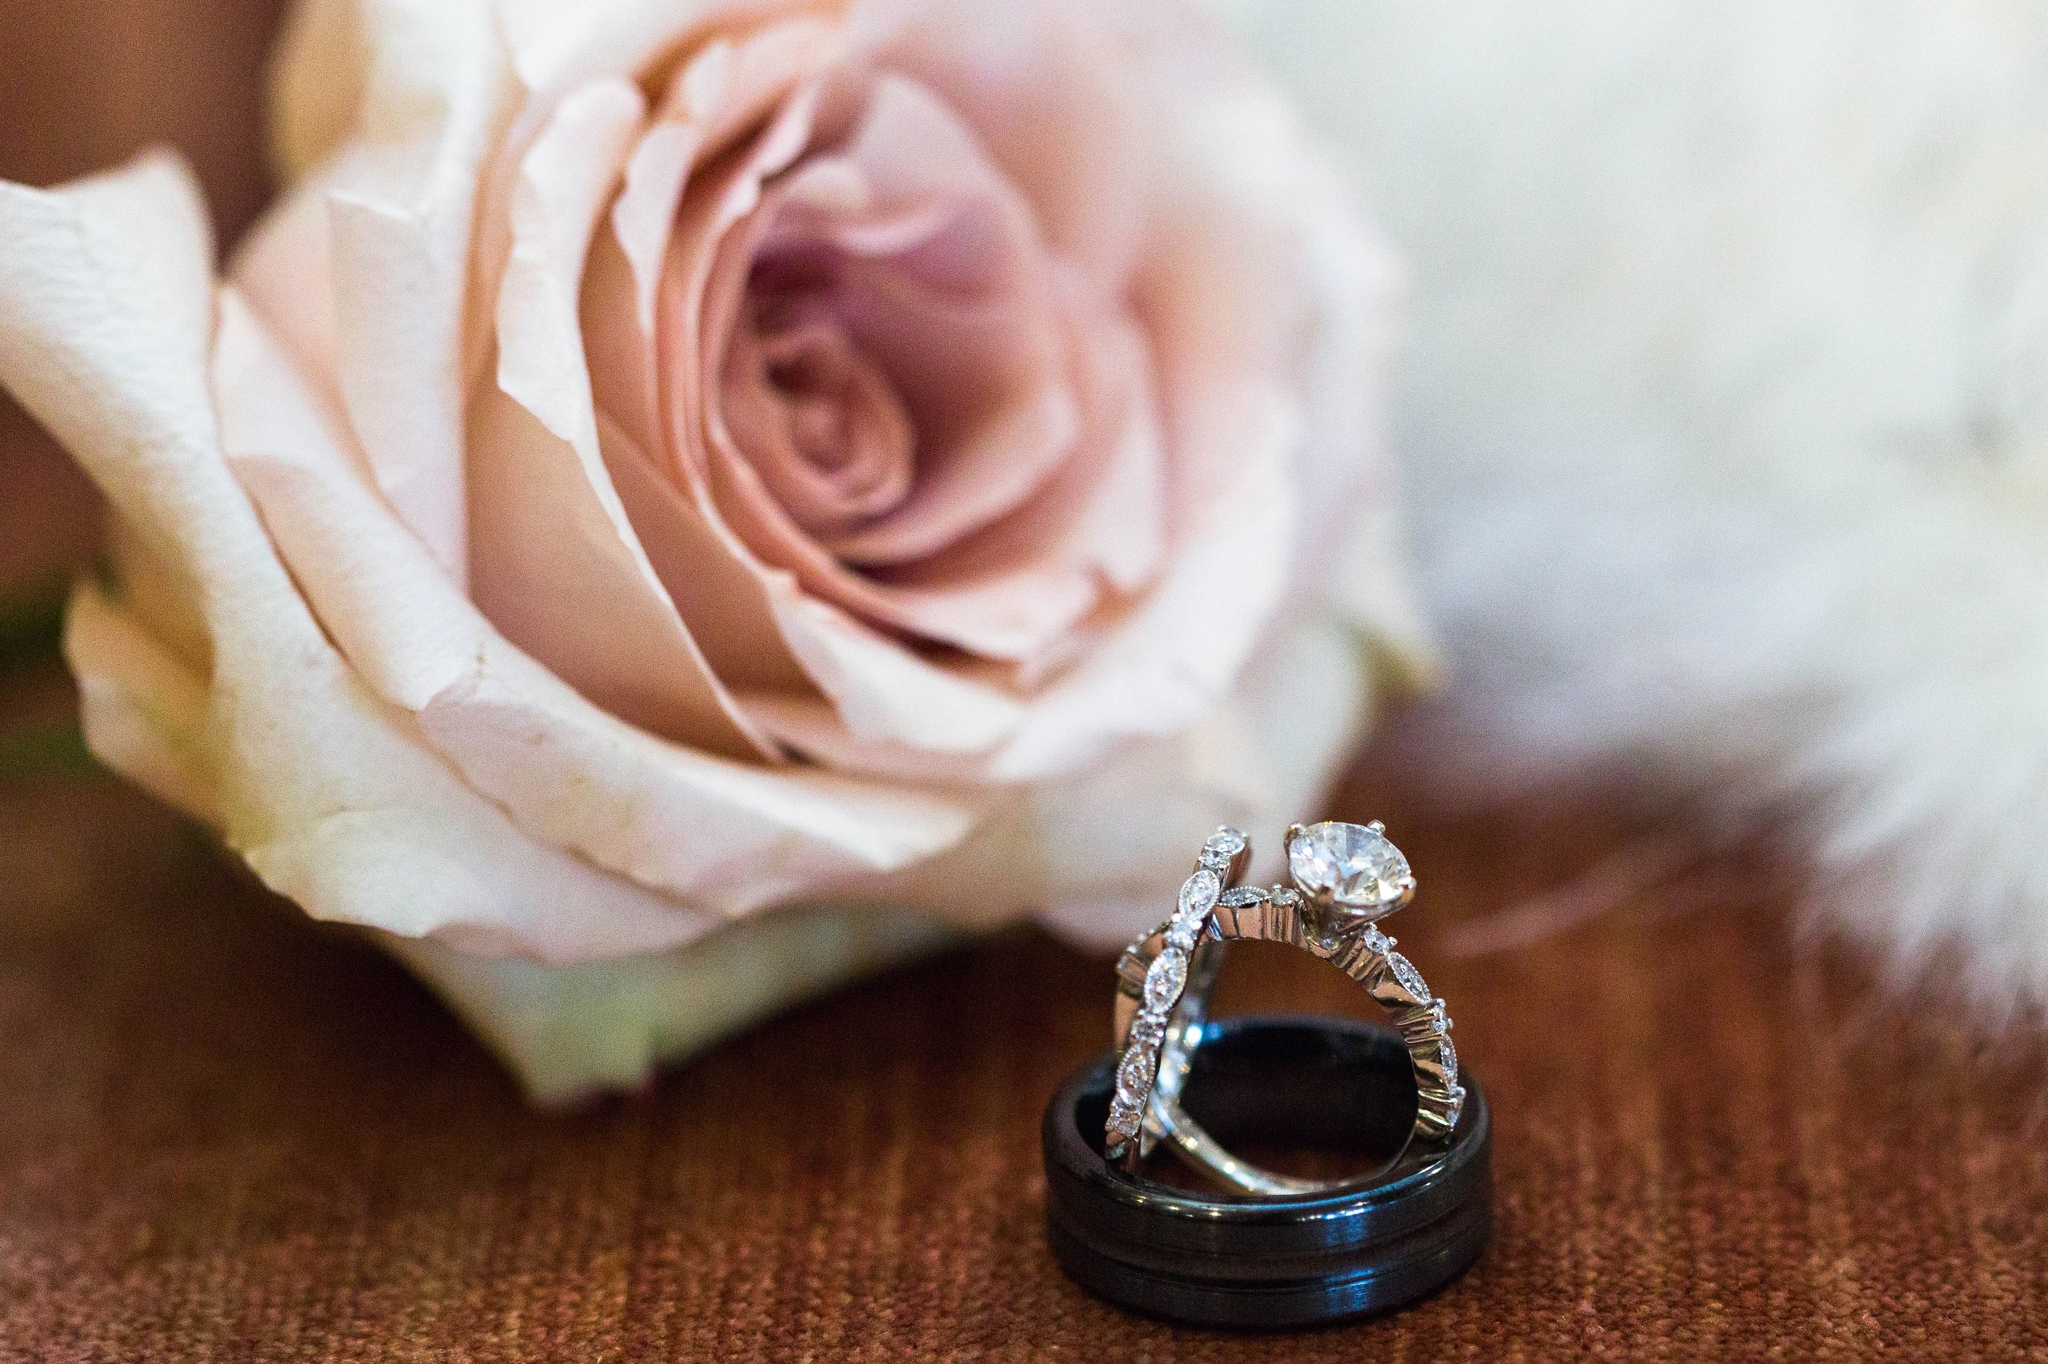 Wedding Ring Details with roses - Honolulu Oahu Hawaii Wedding Photographer